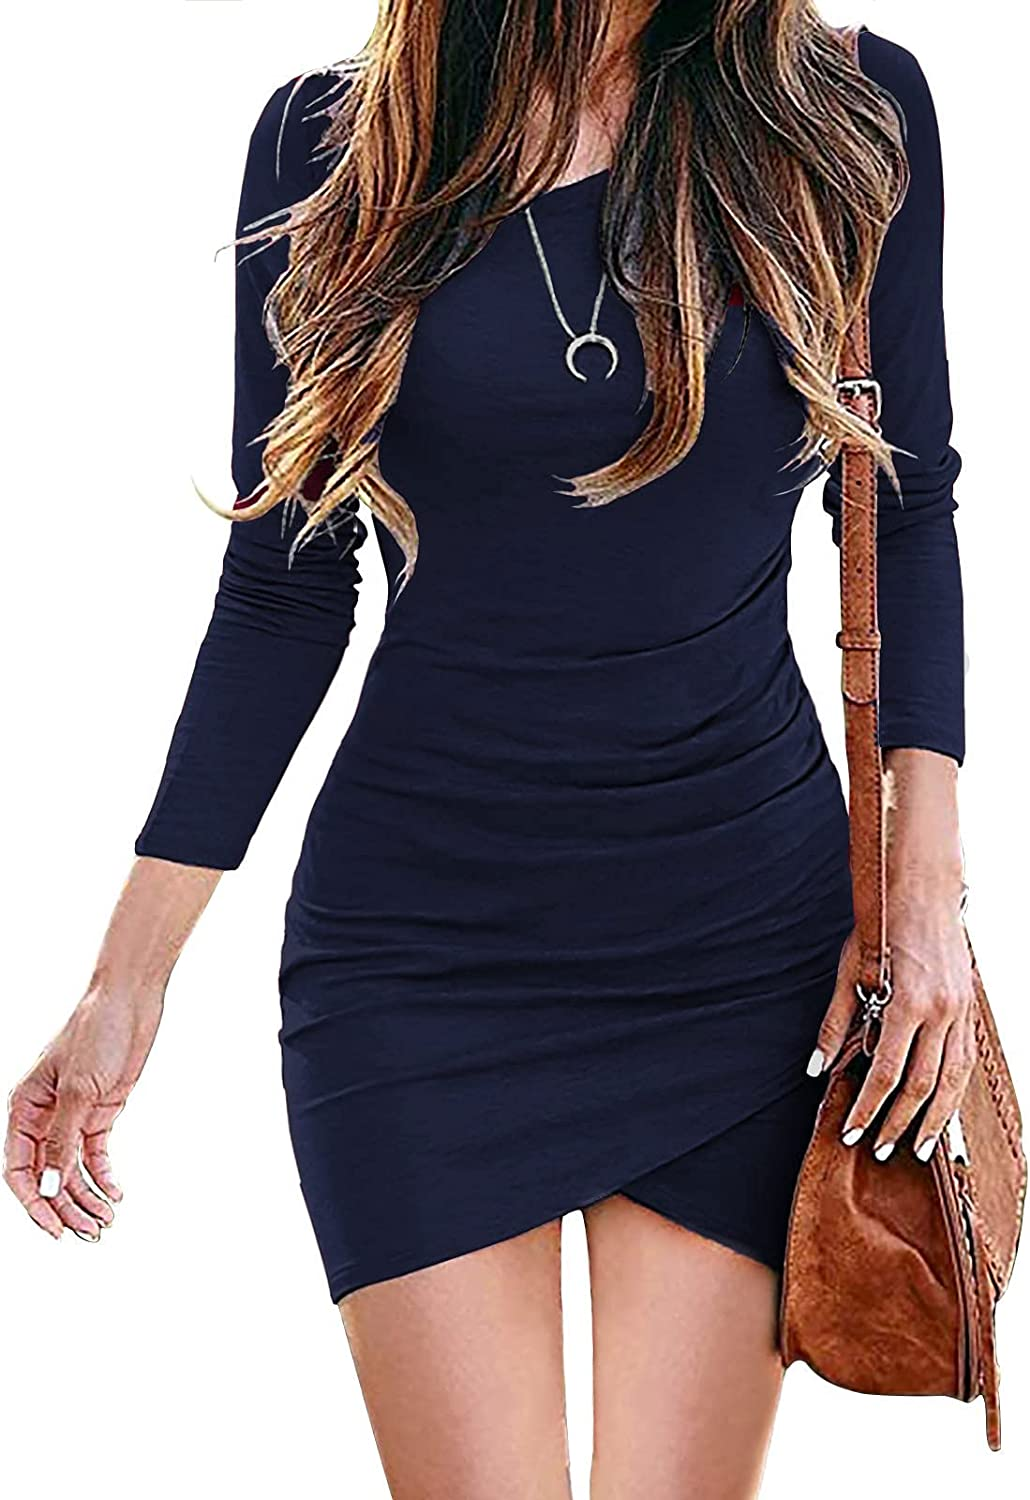 ANDERE ARTE Womens Long Sleeve Dress Bodycon Ruched Casual Sexy Elegant Wrap Midi Tshirt Fall Dresses for Party Wedding Guest